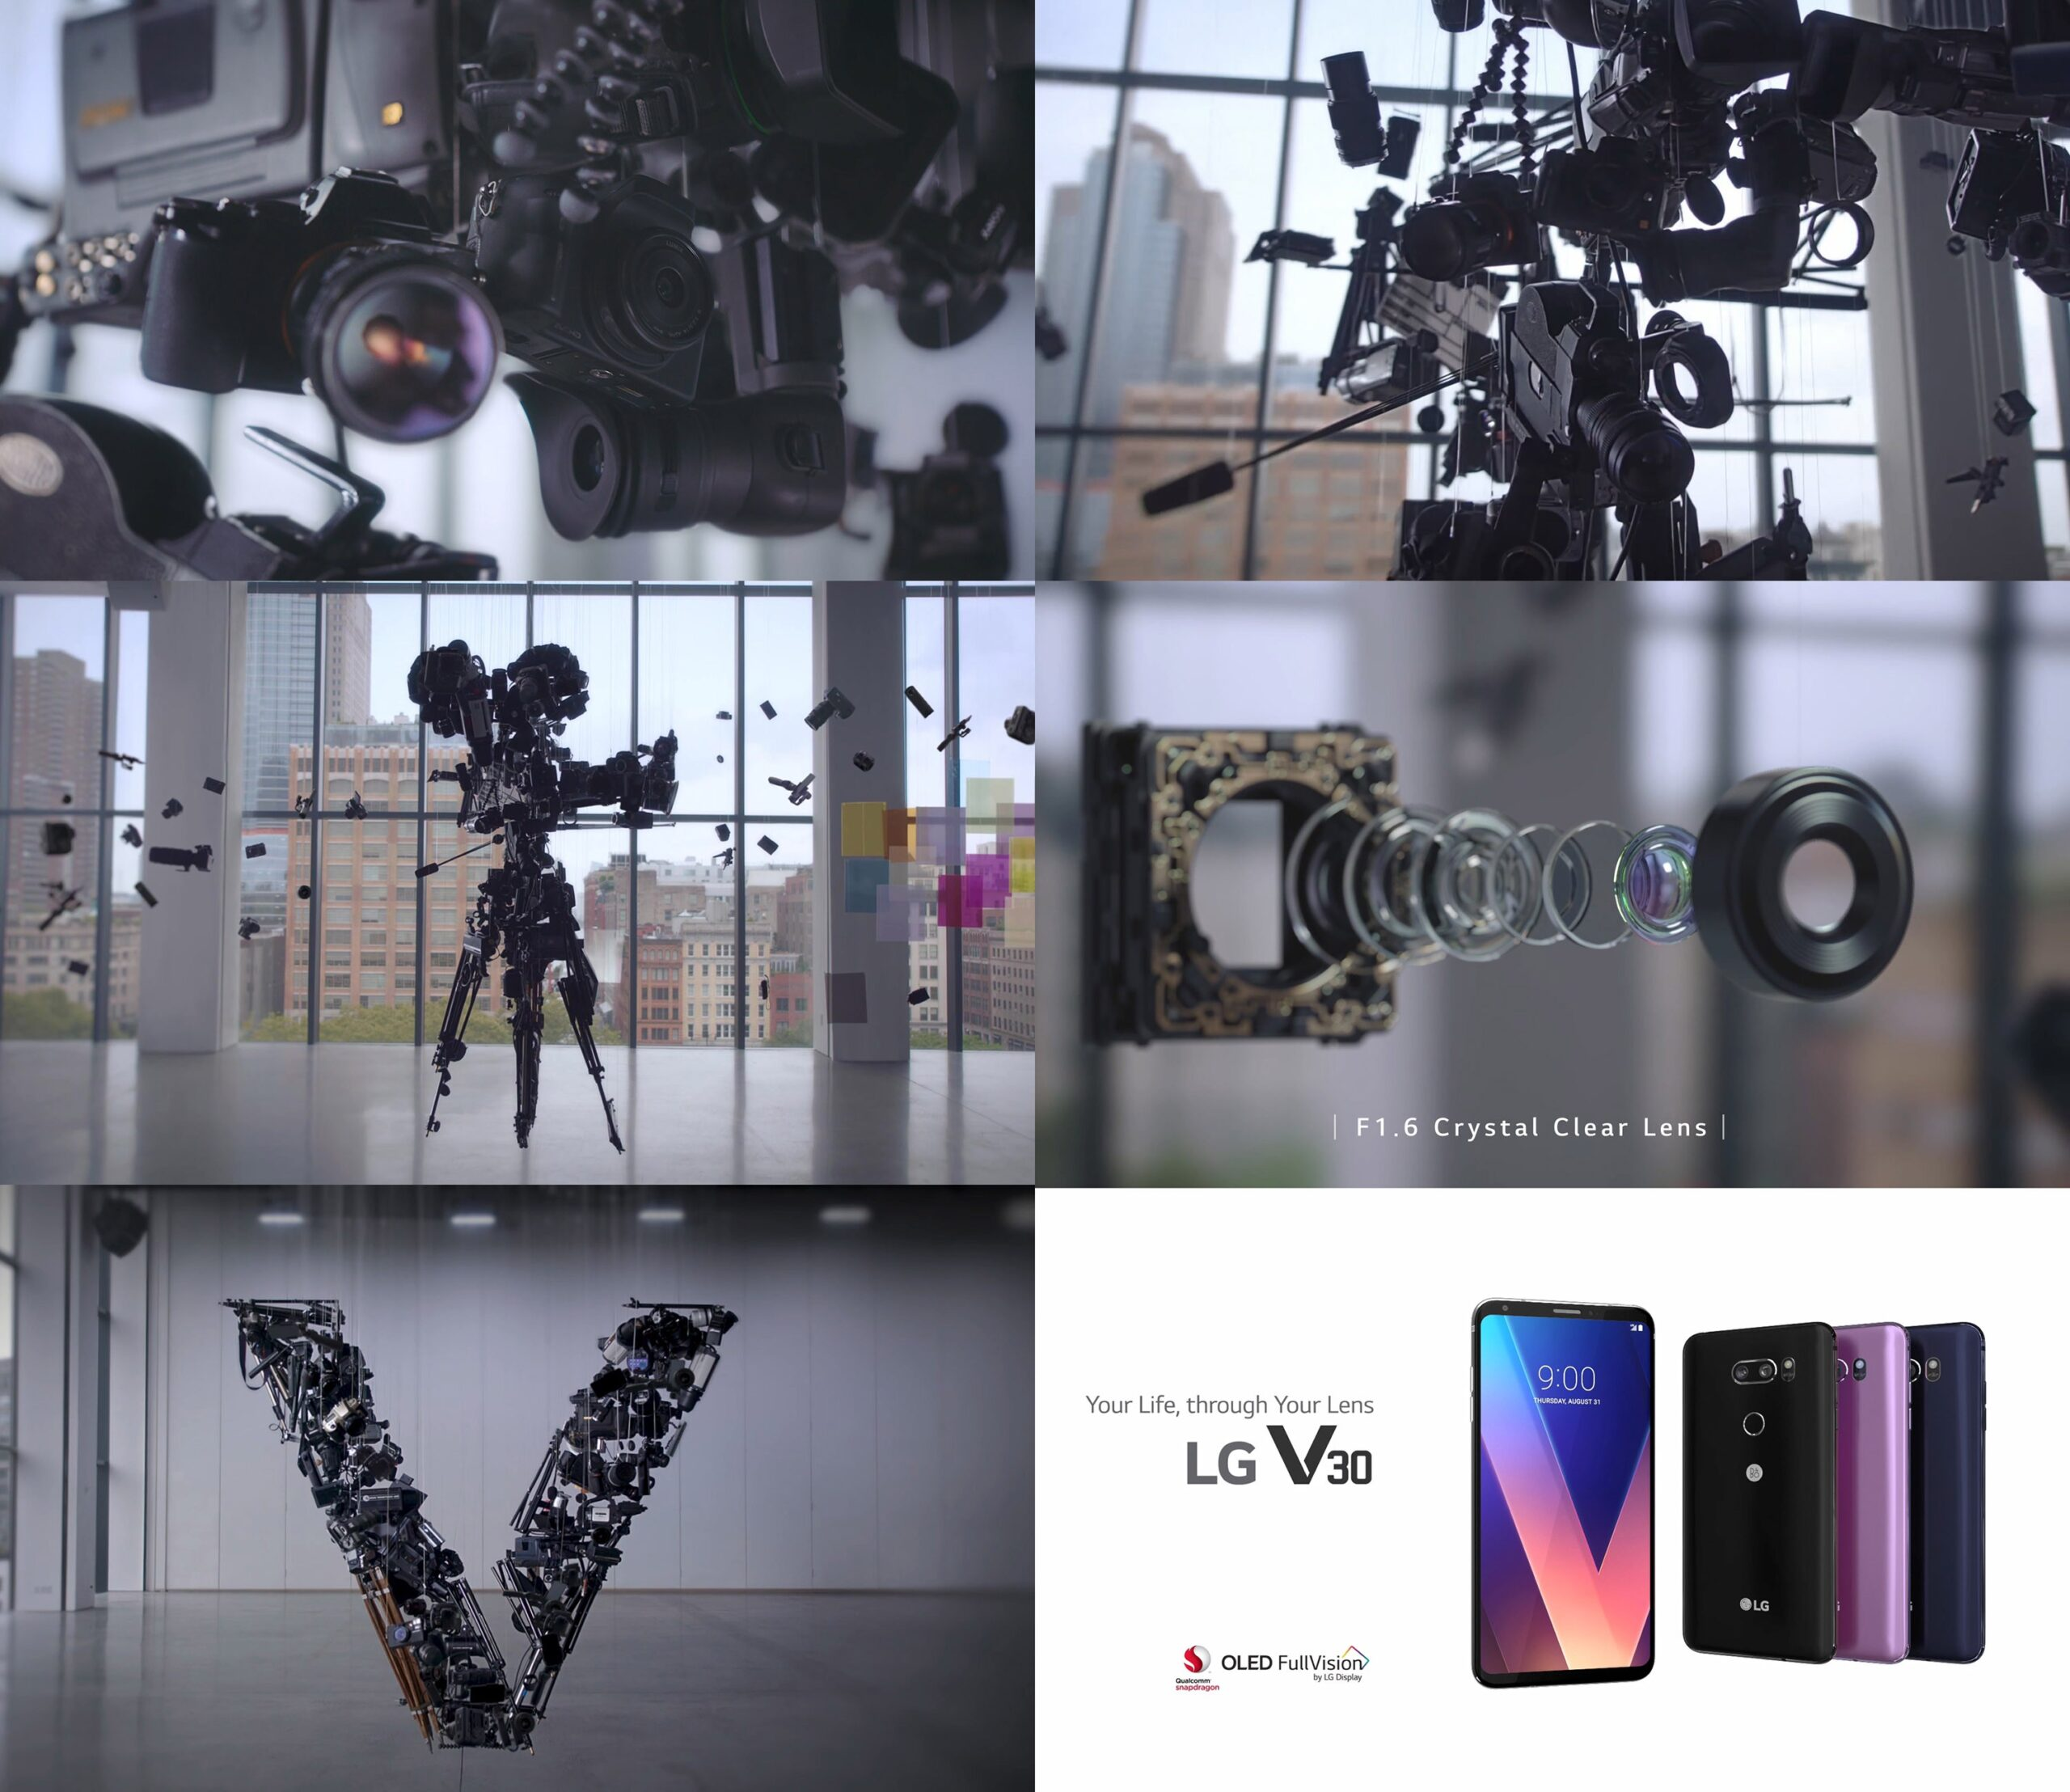 Screenshots taken from a video about LG Electronics' collaboration with artist Michael Murphy to show off the LG V30's rich multimedia capabilities using kinetic art